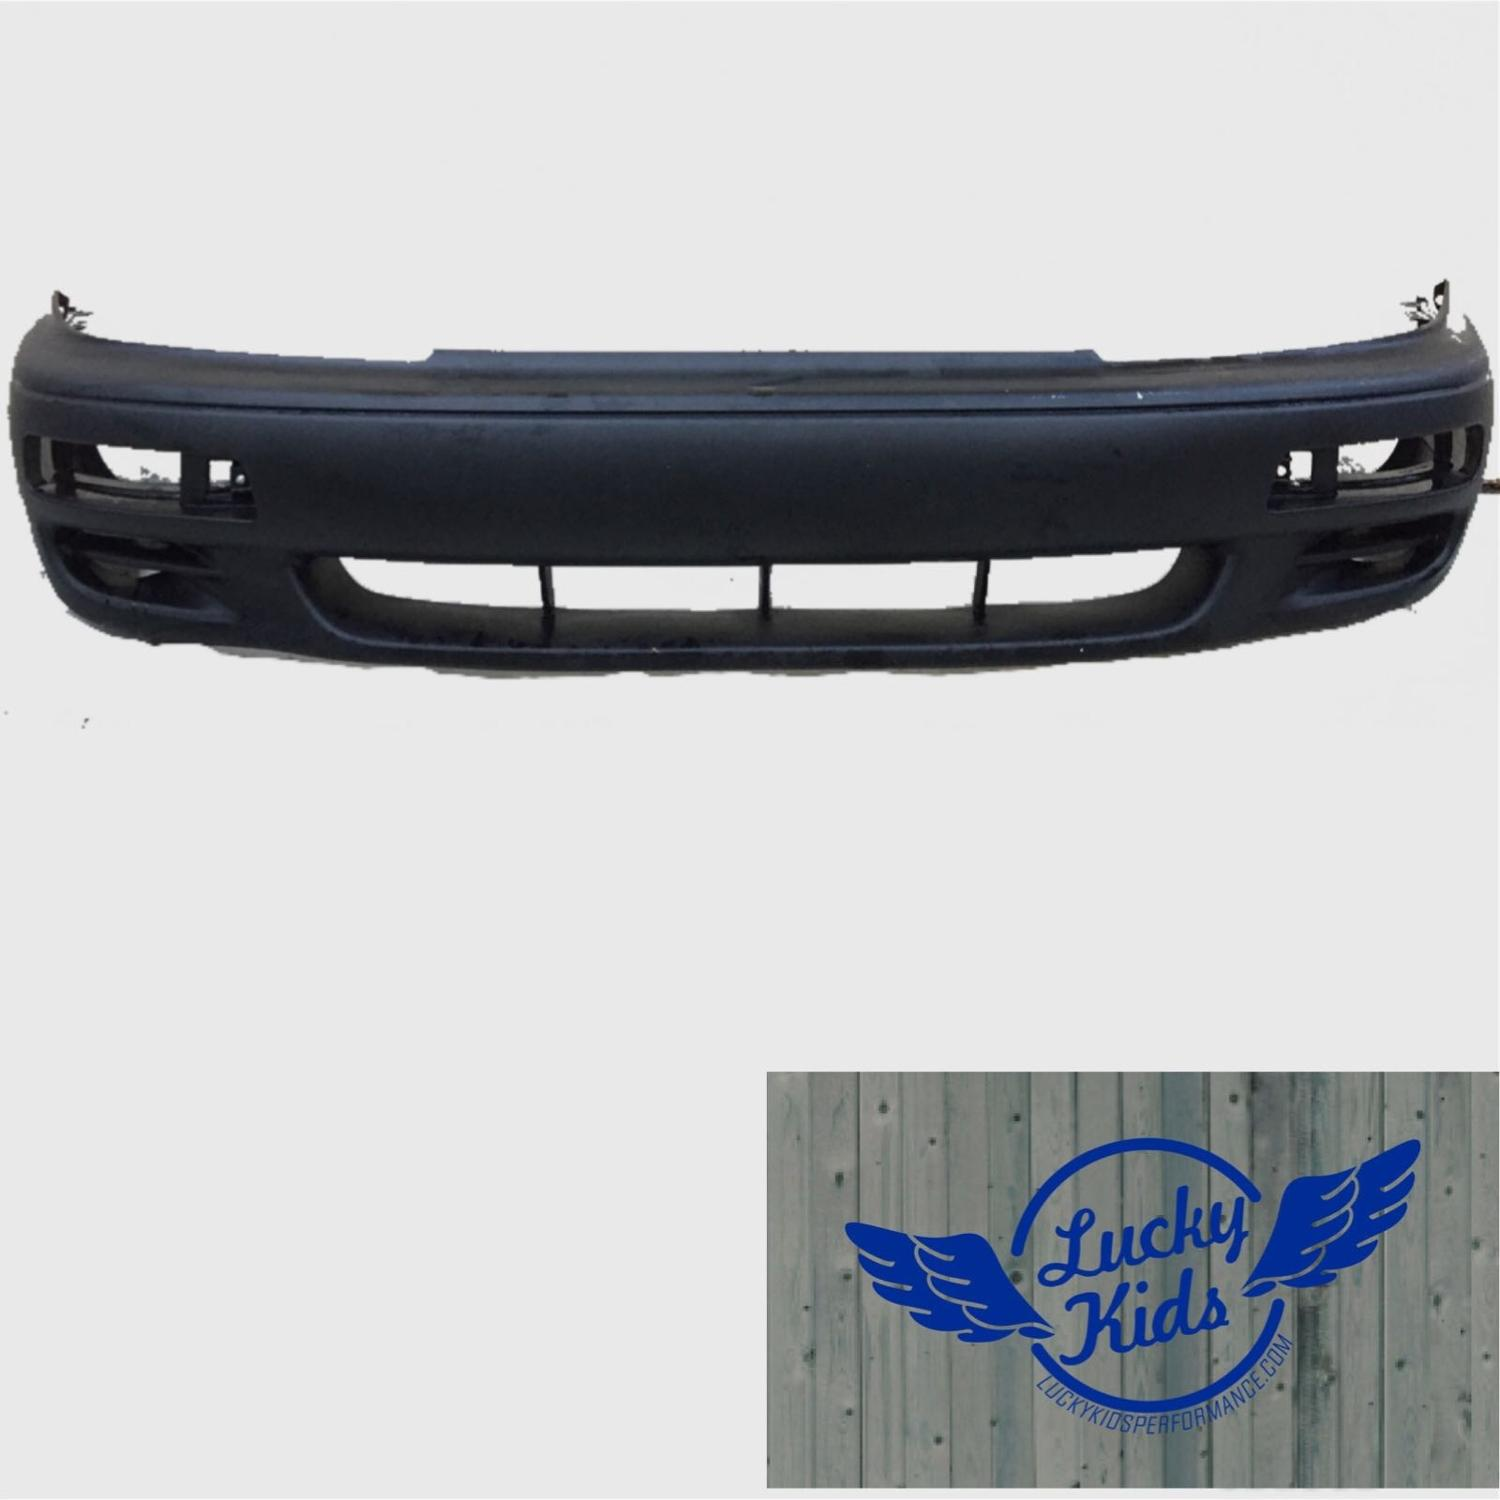 best front bumper cover for 1995 1996 toyota camry for sale in pomona california for 2017. Black Bedroom Furniture Sets. Home Design Ideas